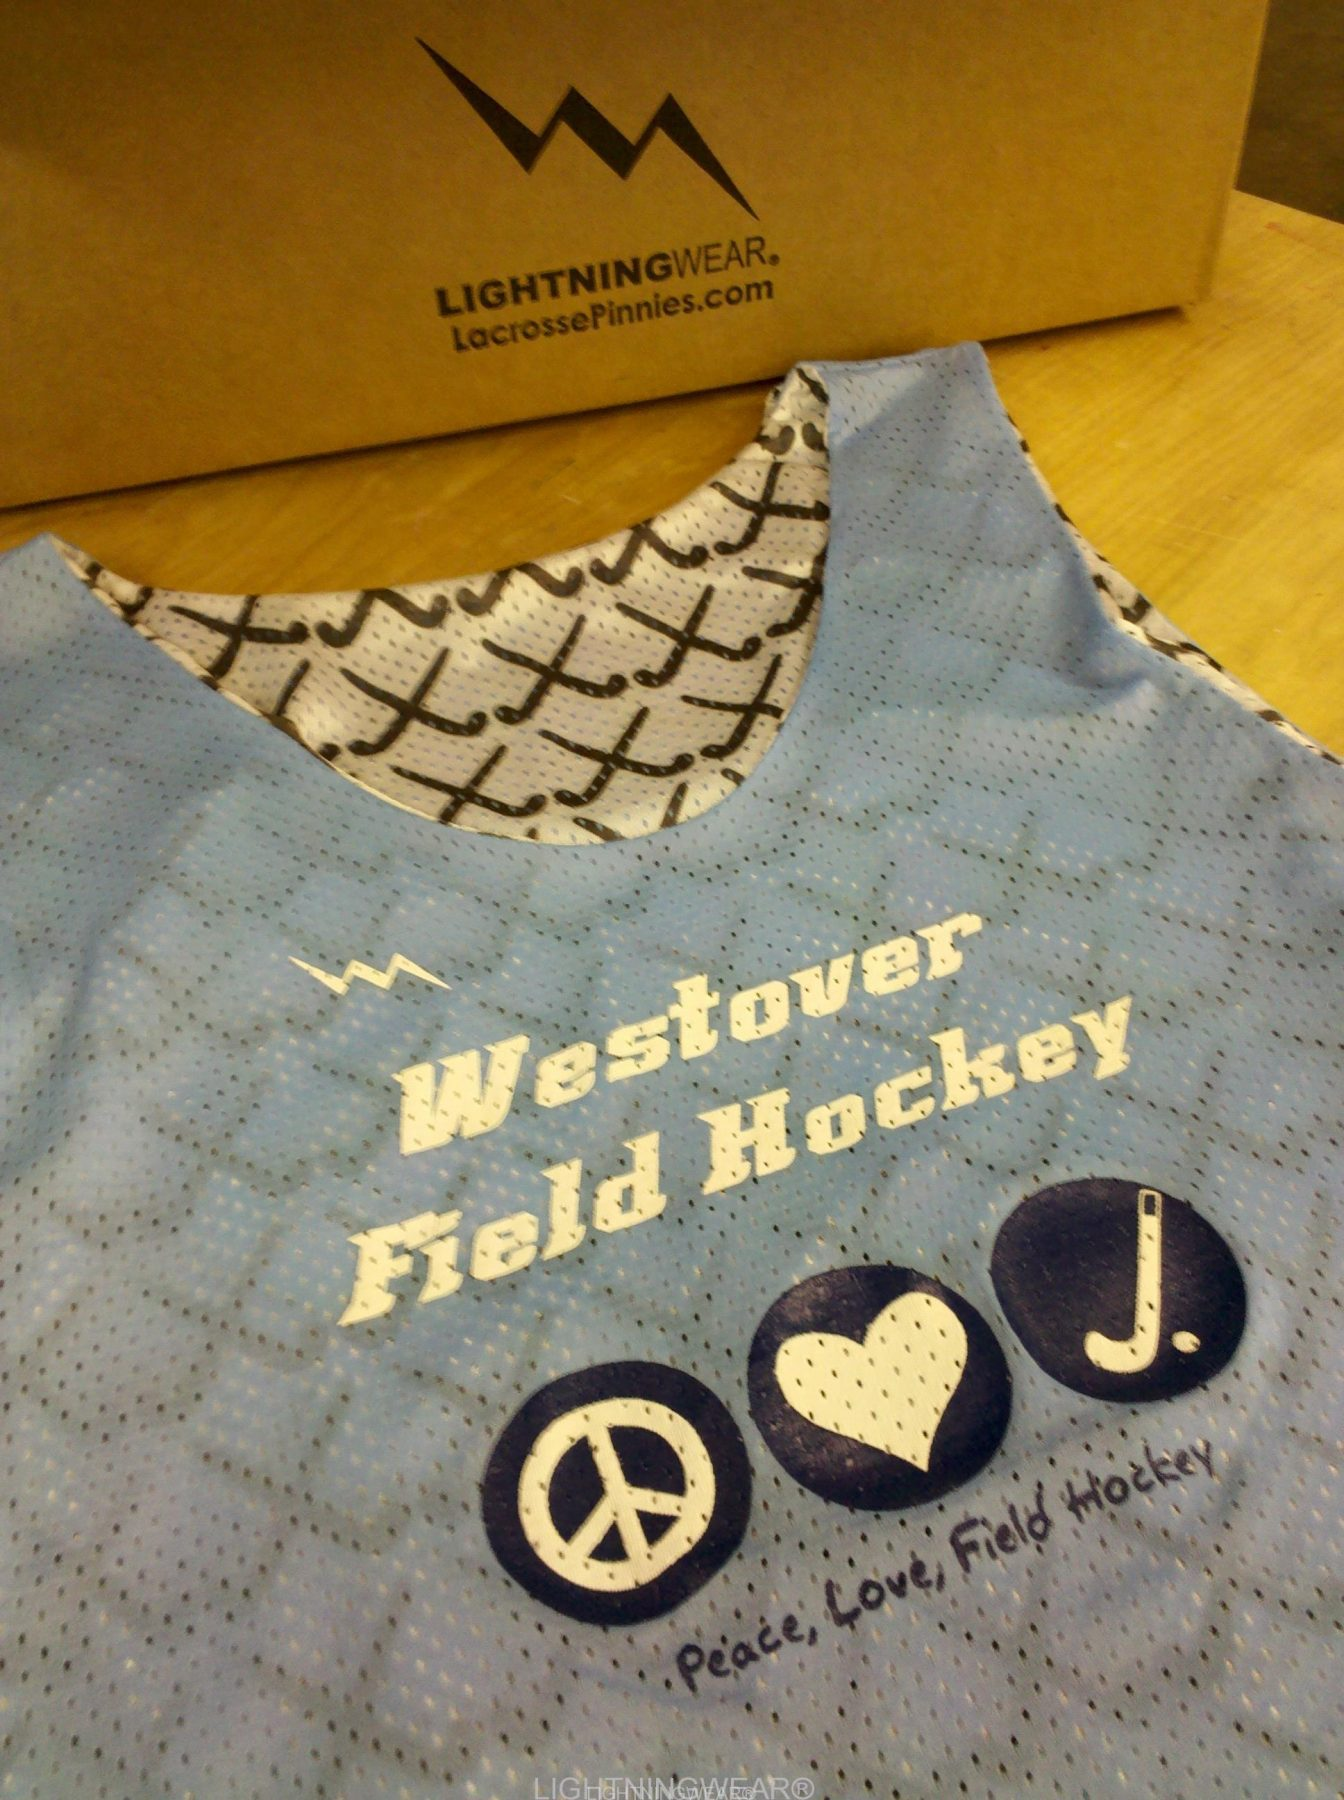 westover field hockey